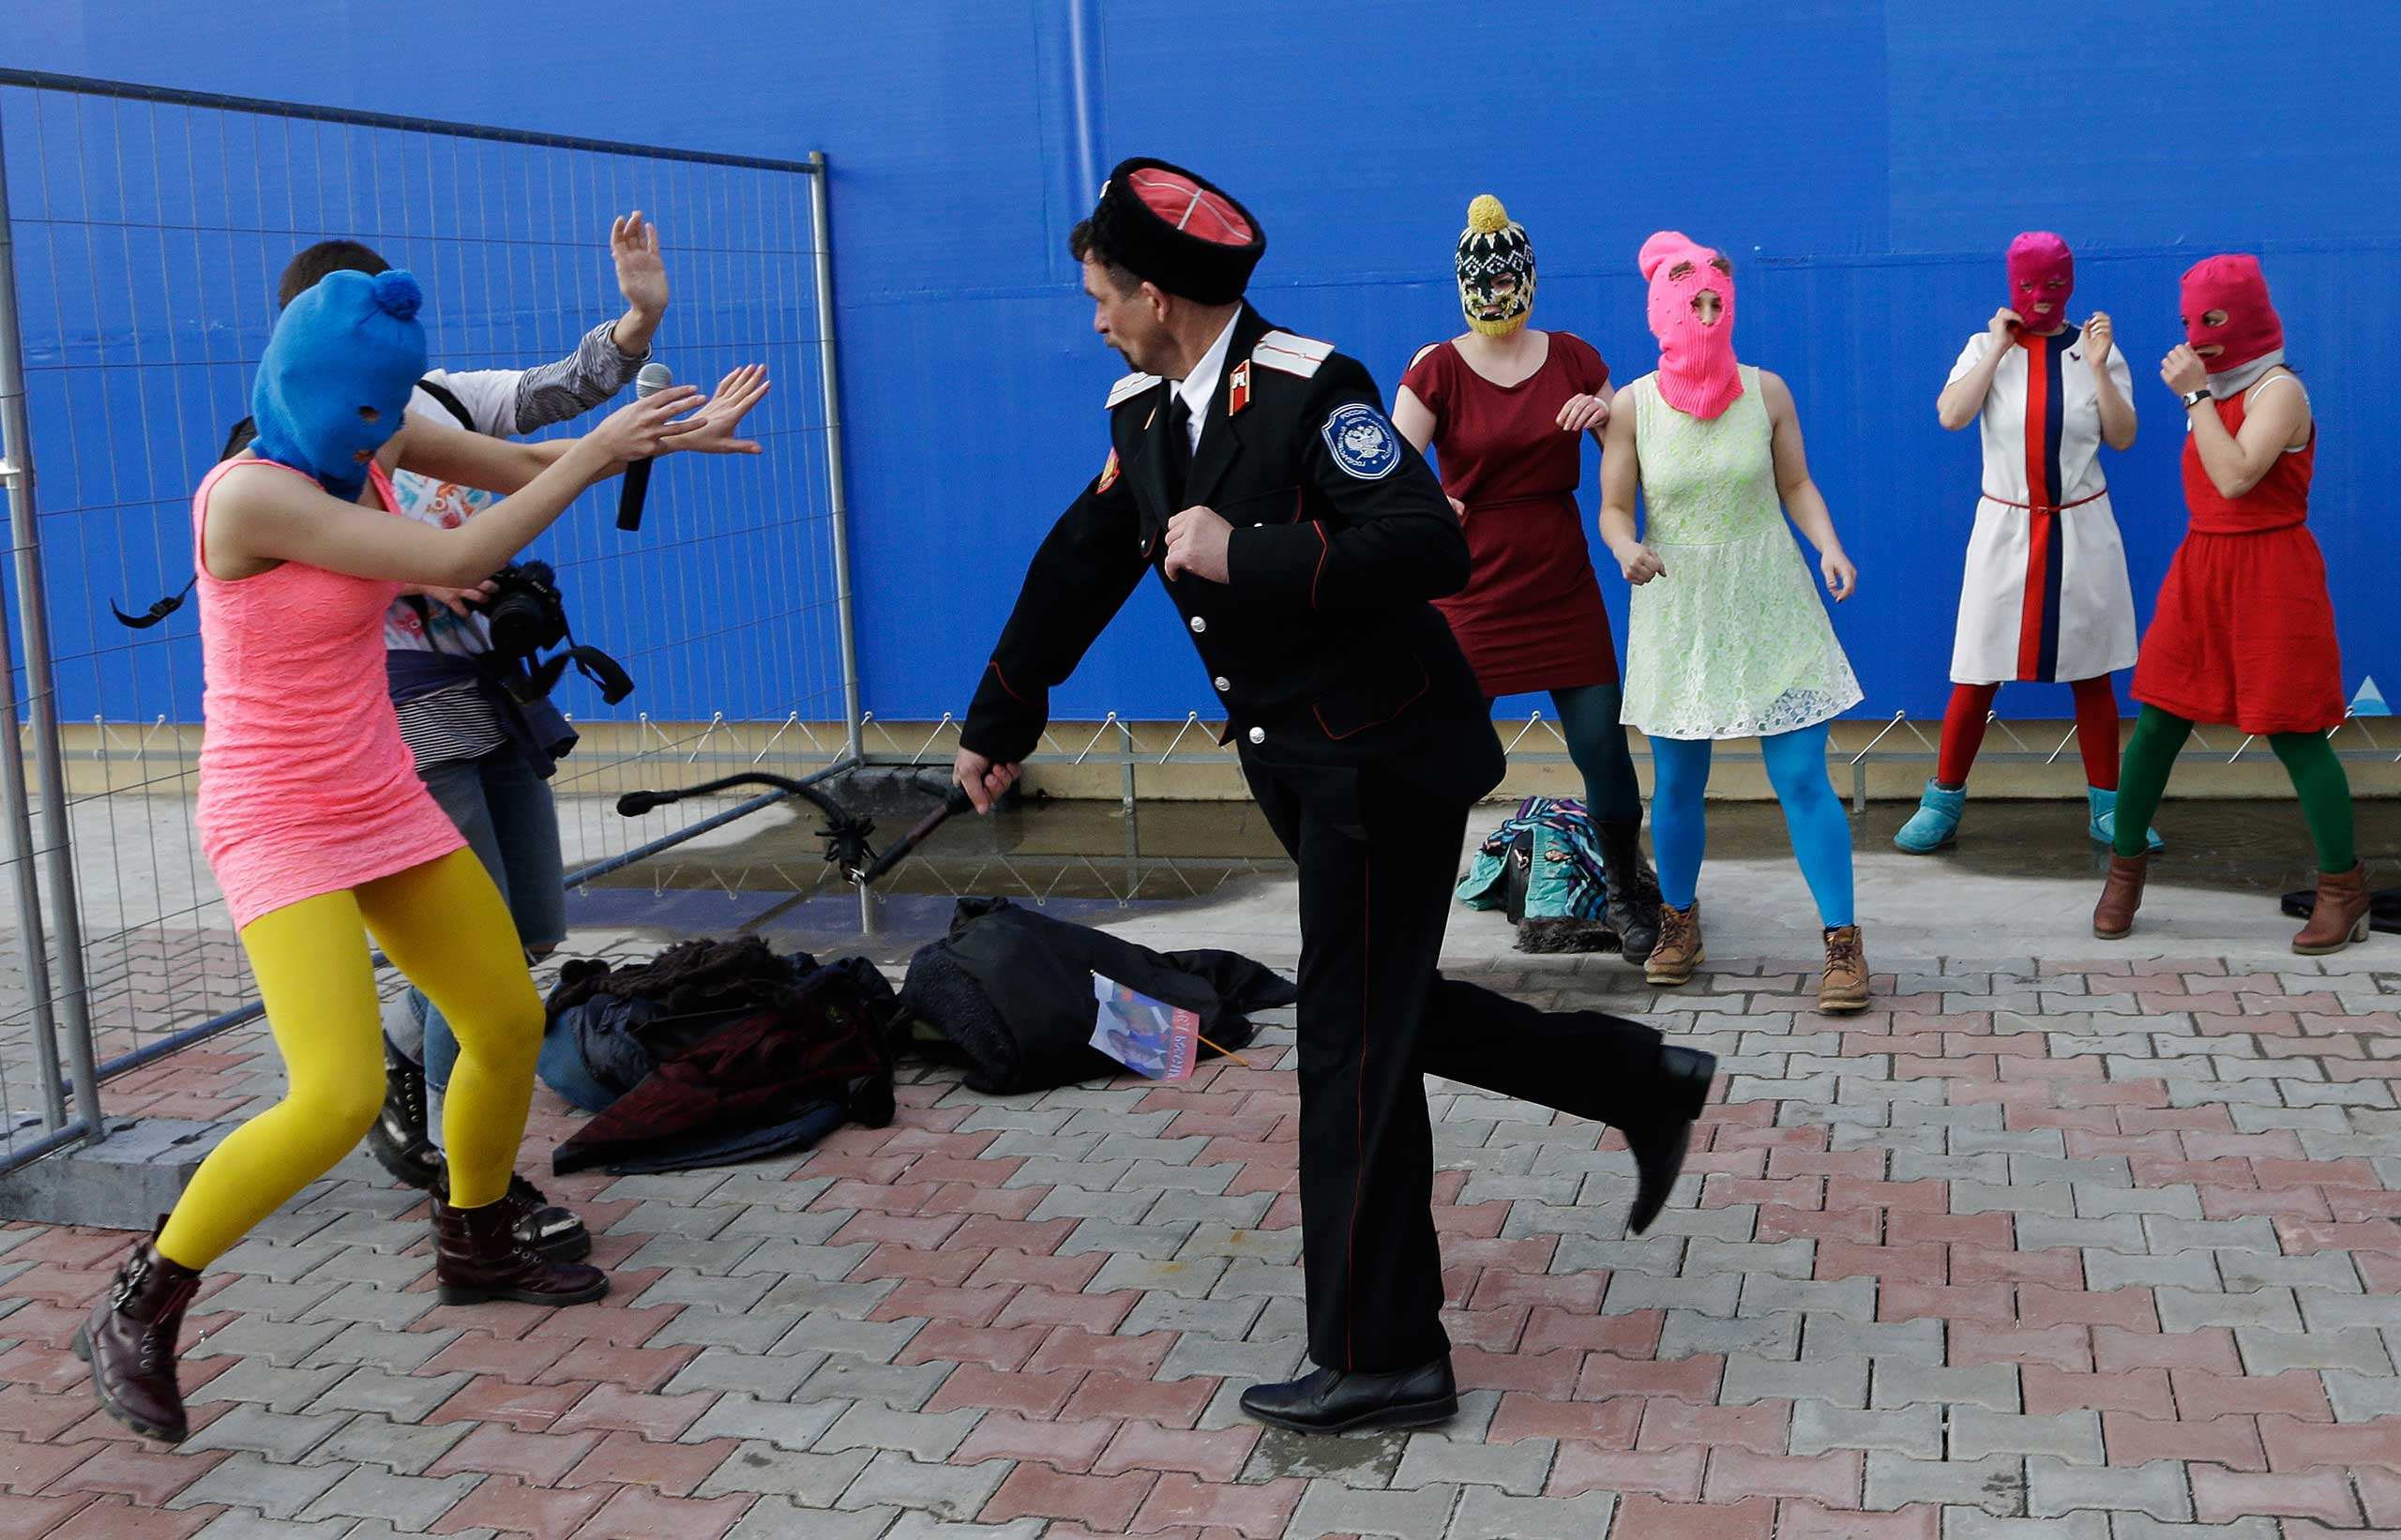 Russia: Protest performance at Sochi OlympicsA Cossack militiaman attacks Nadezhda Tolokonnikova and a photographer as she and fellow members of the punk group Pussy Riot, including Maria Alekhina, center, in the pink balaclava, stage a protest performance in Sochi, Russia, Feb. 19, 2014.